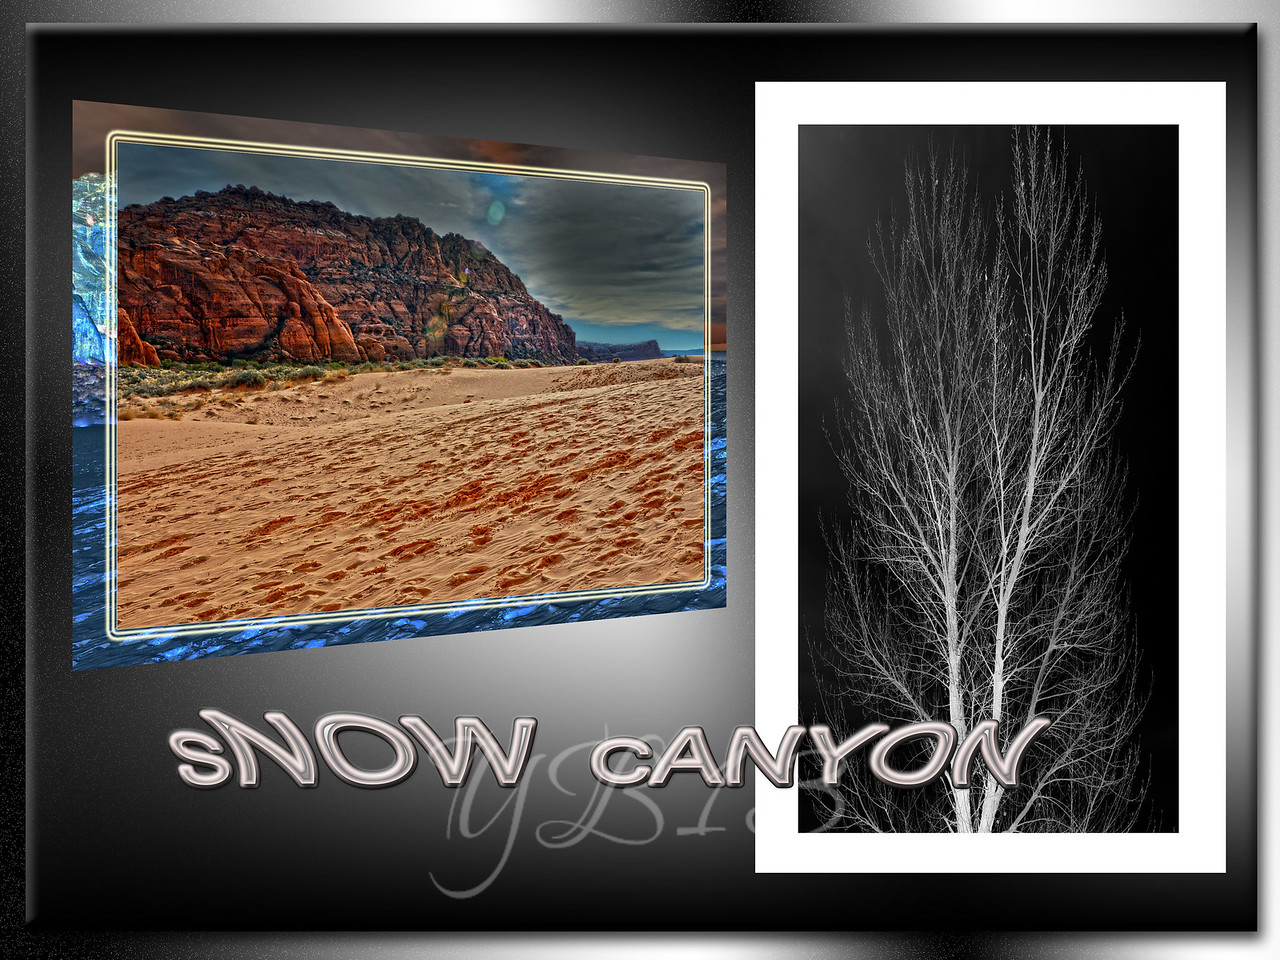 SNOW CANYON 2